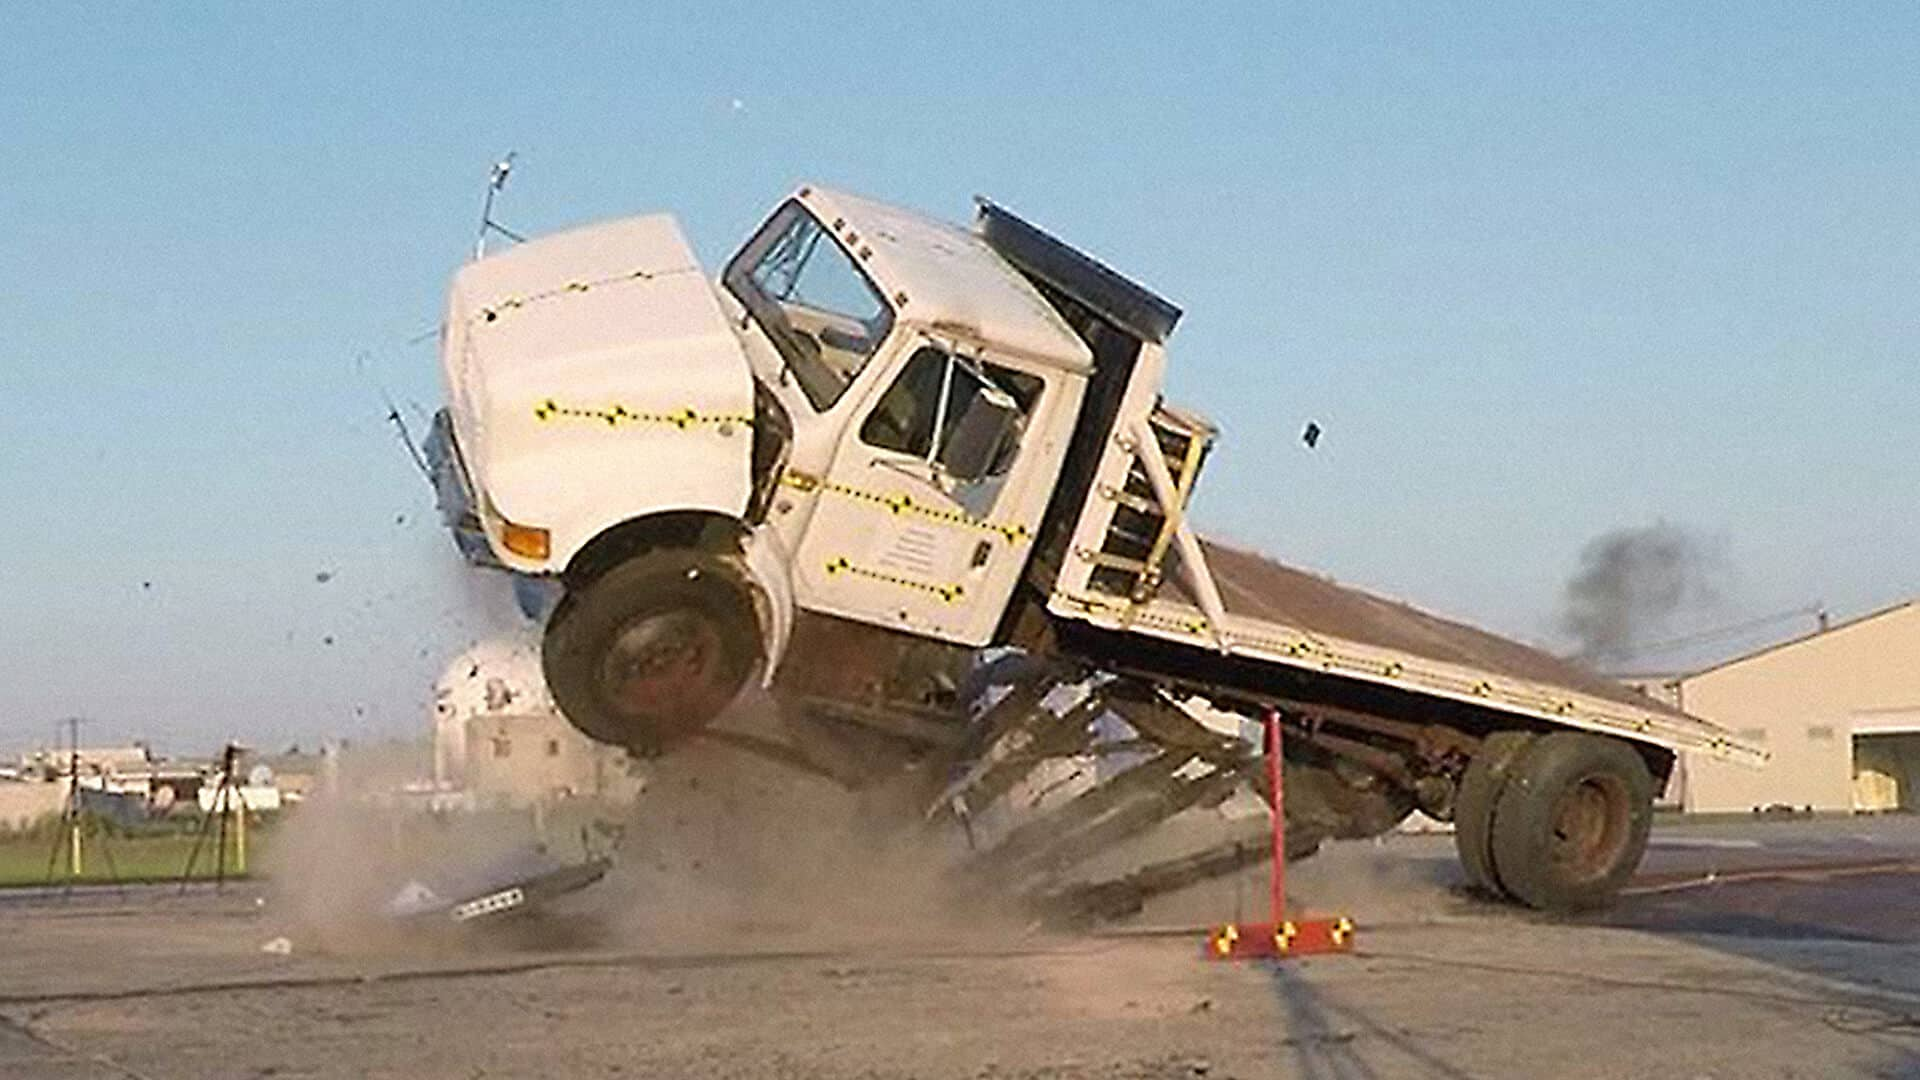 Pyramid barrier stops the truck